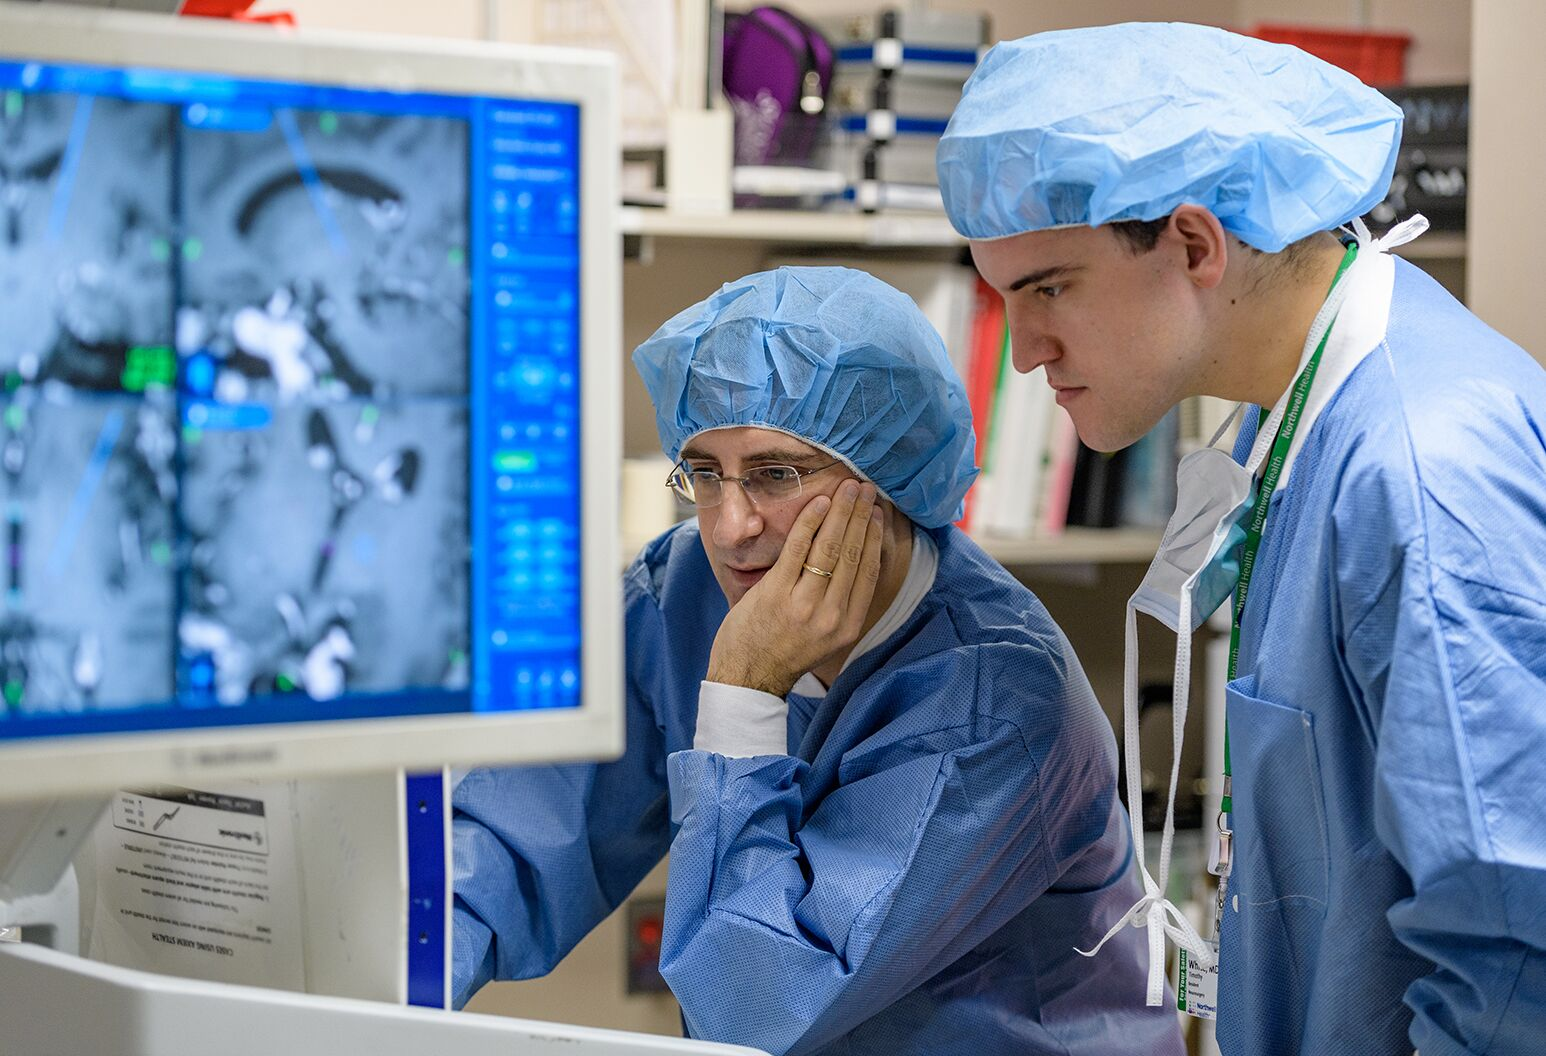 2 people in blue scrubs observing a technical device